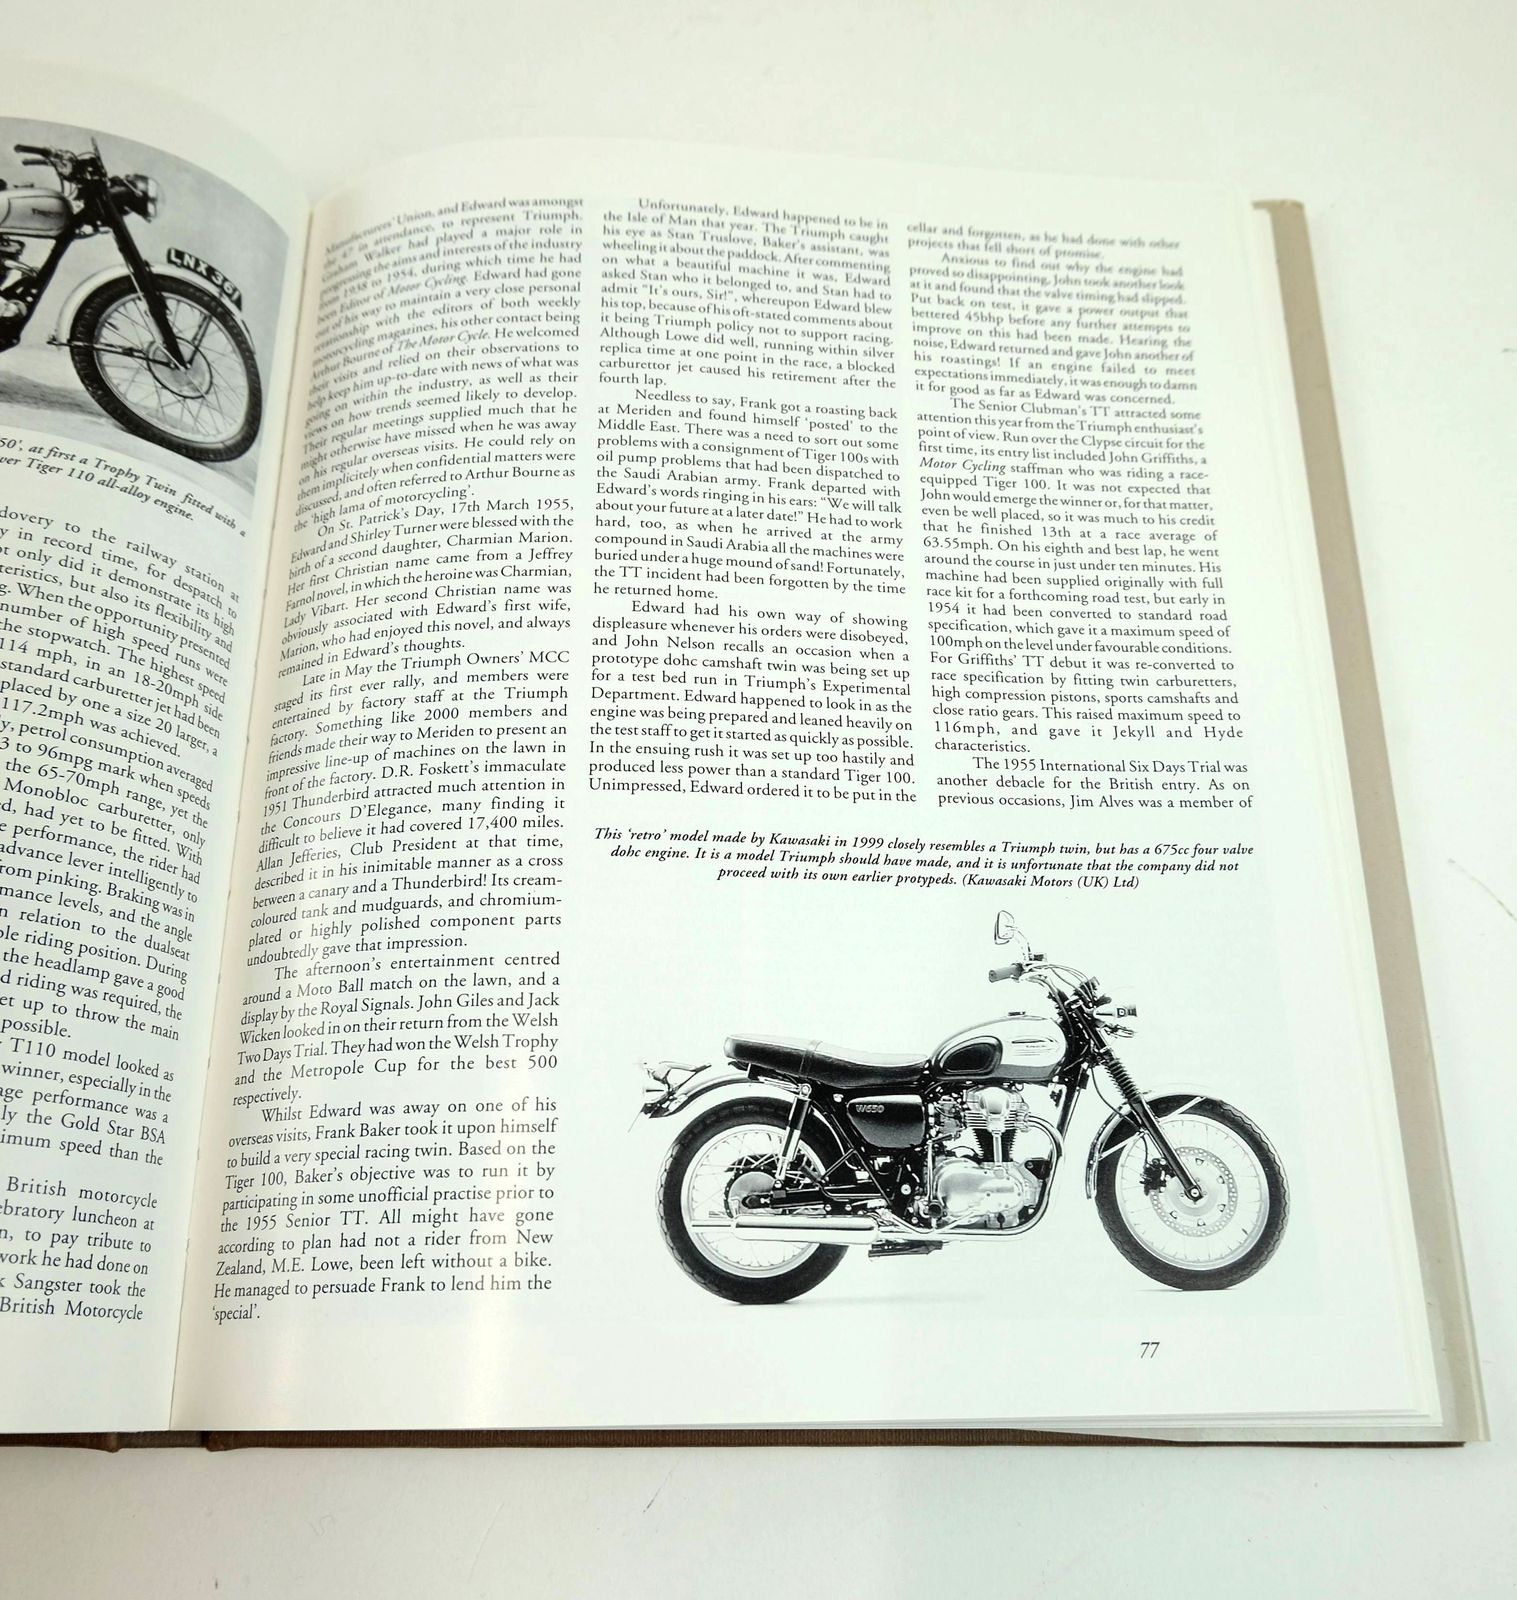 Photo of TURNER'S TRIUMPHS: EDWARD TURNER & HIS TRIUMPH MOTORCYCLES written by Clew, Jeff published by Veloce Publishing Plc. (STOCK CODE: 1818852)  for sale by Stella & Rose's Books